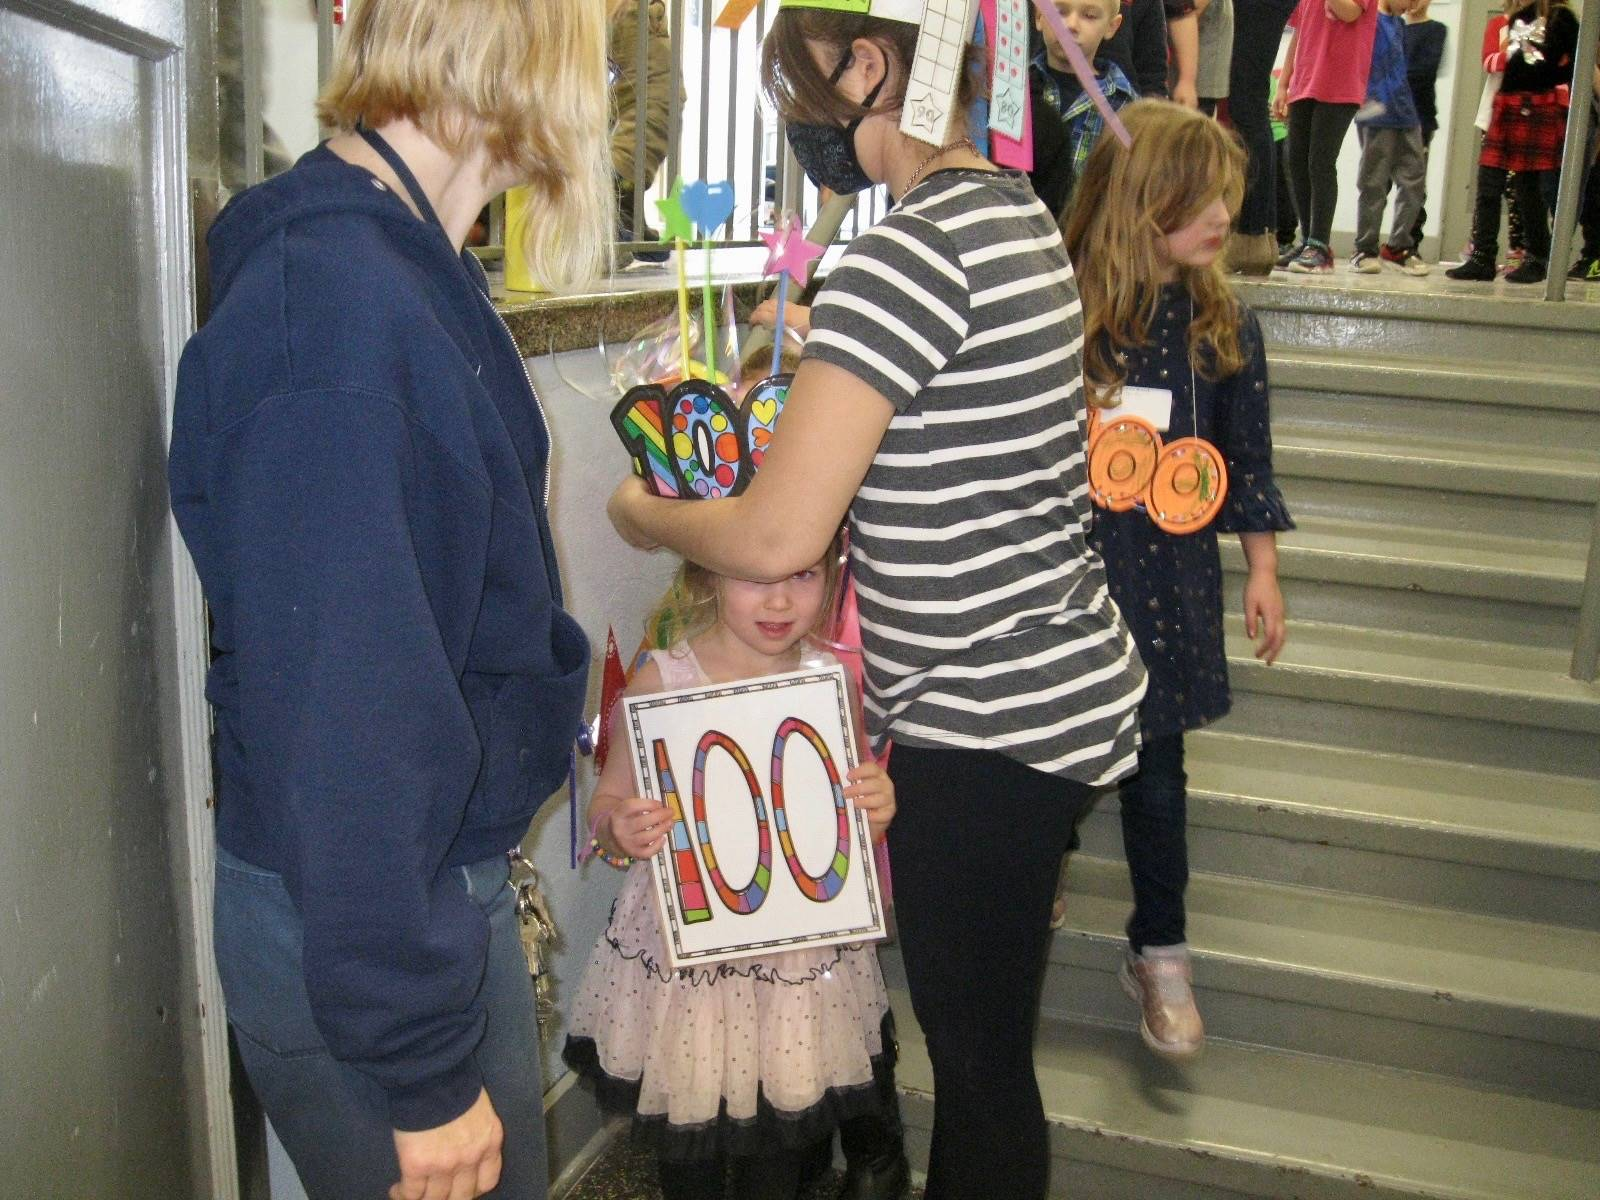 The 100th student is crowned!